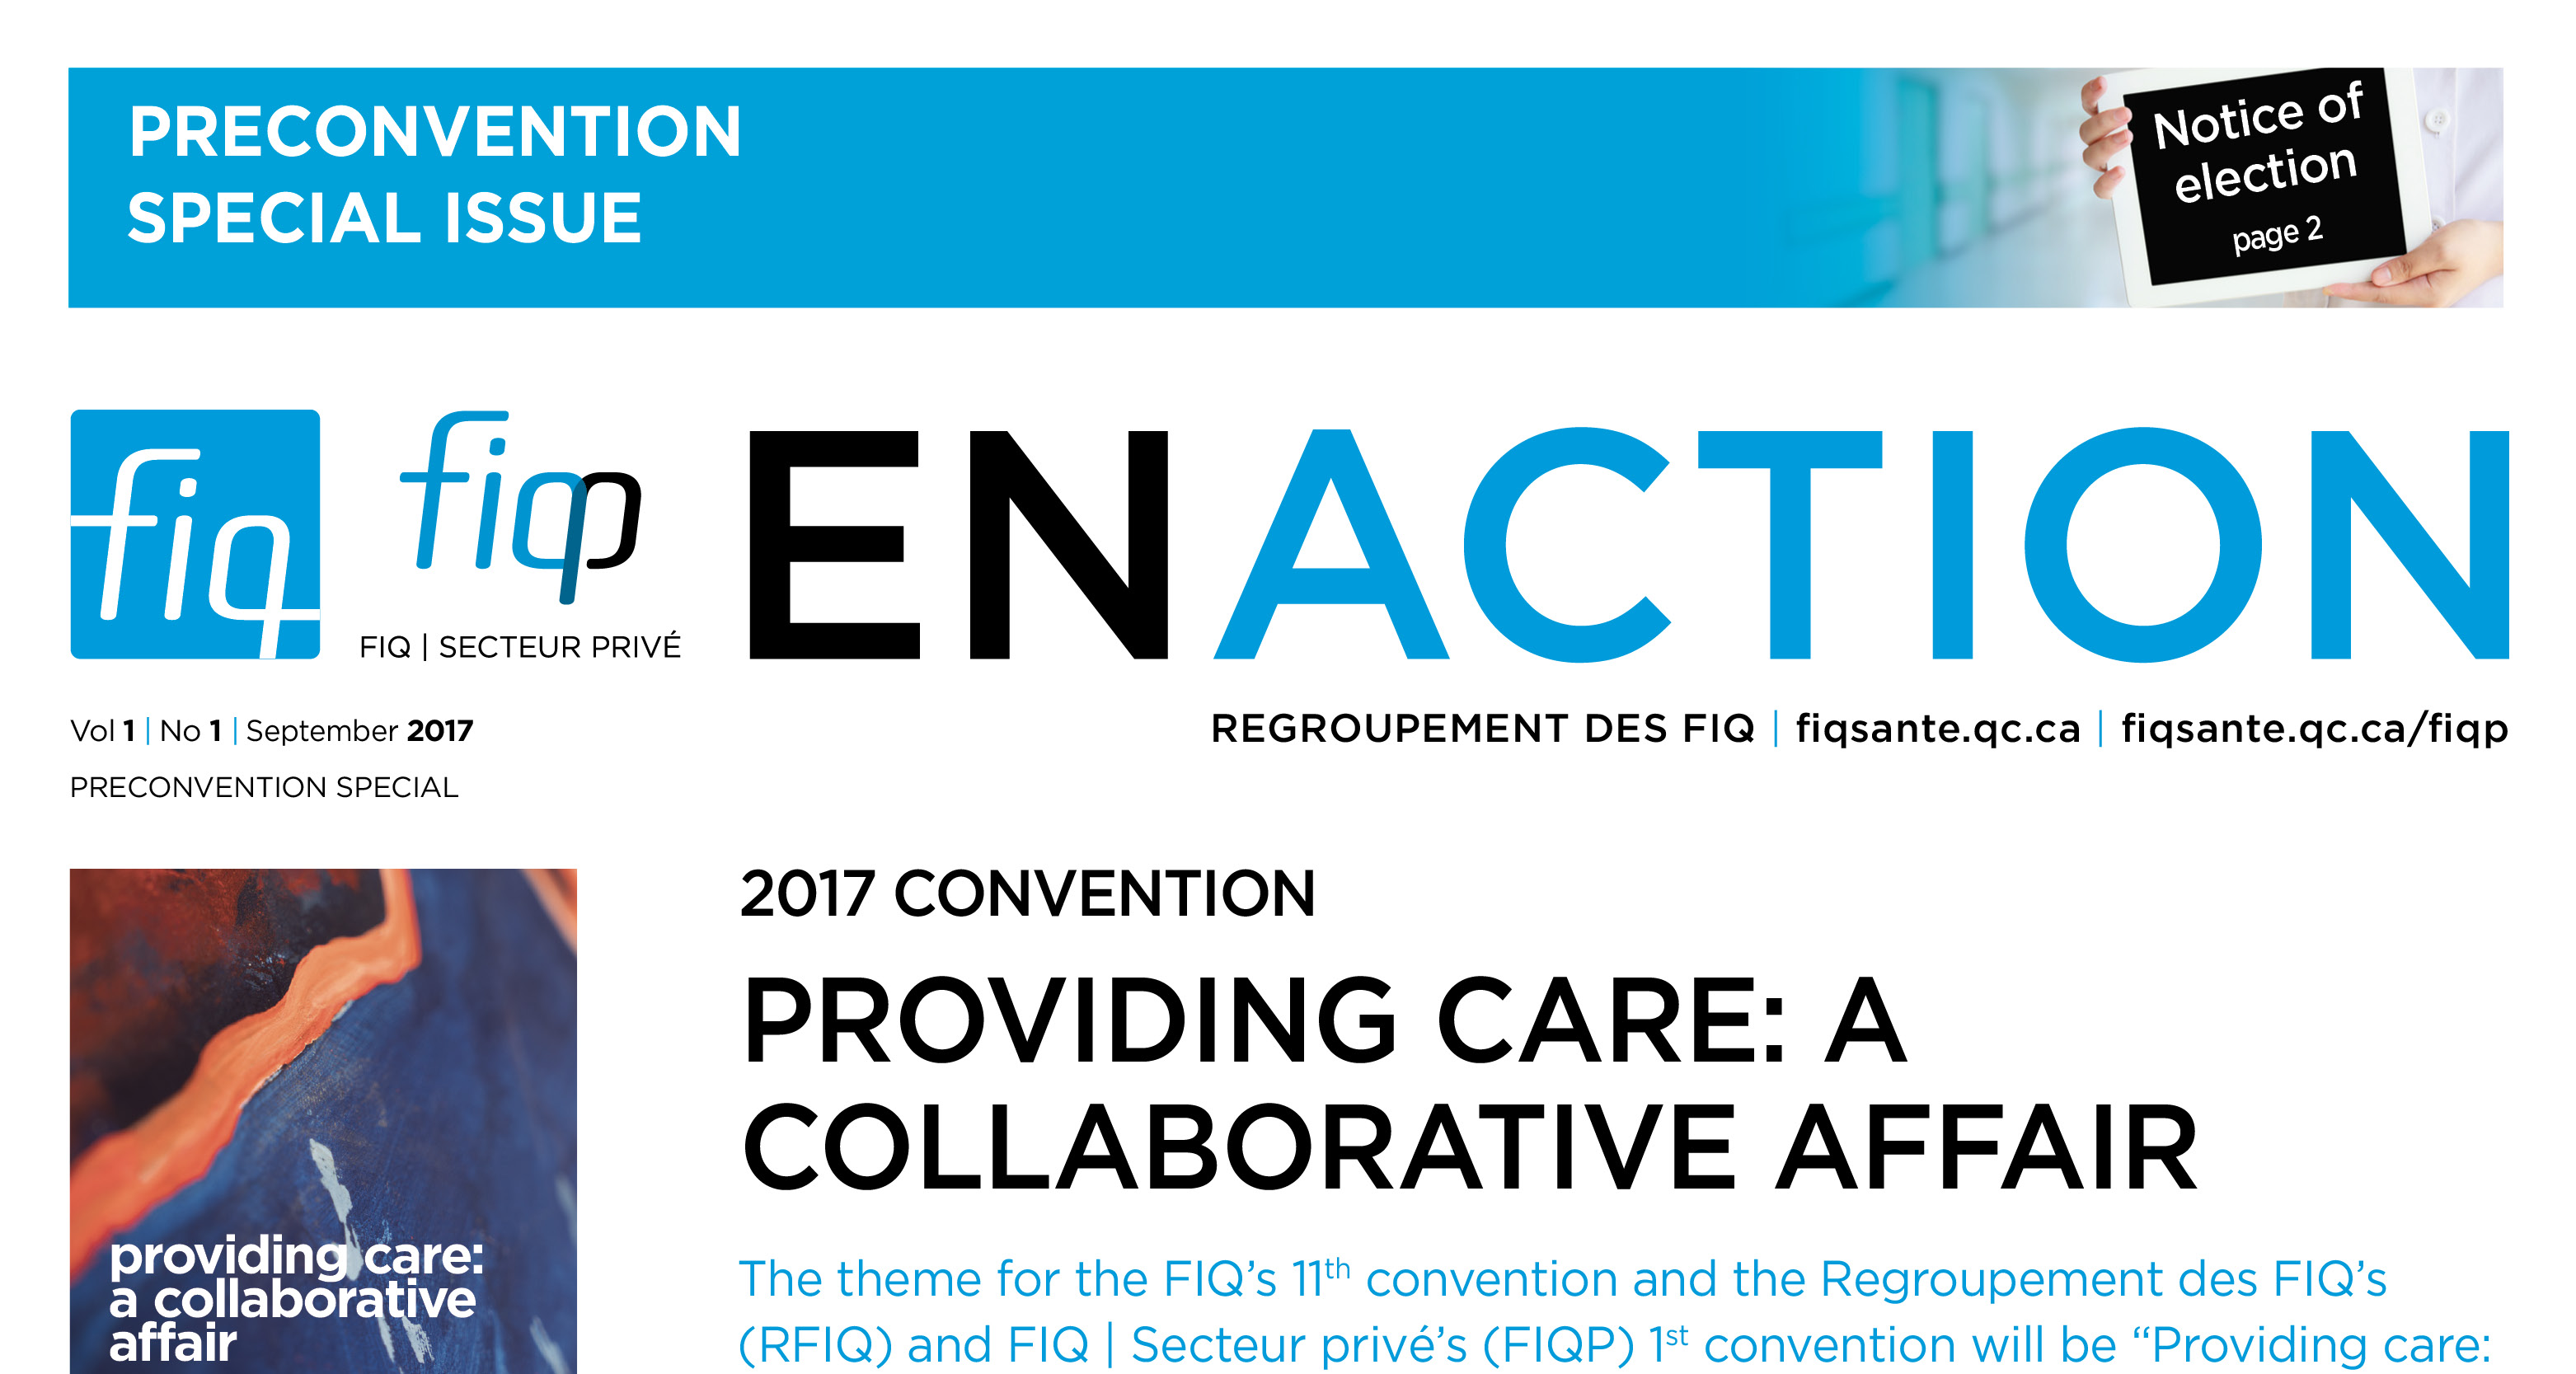 The preconvention FIQ en Action now available